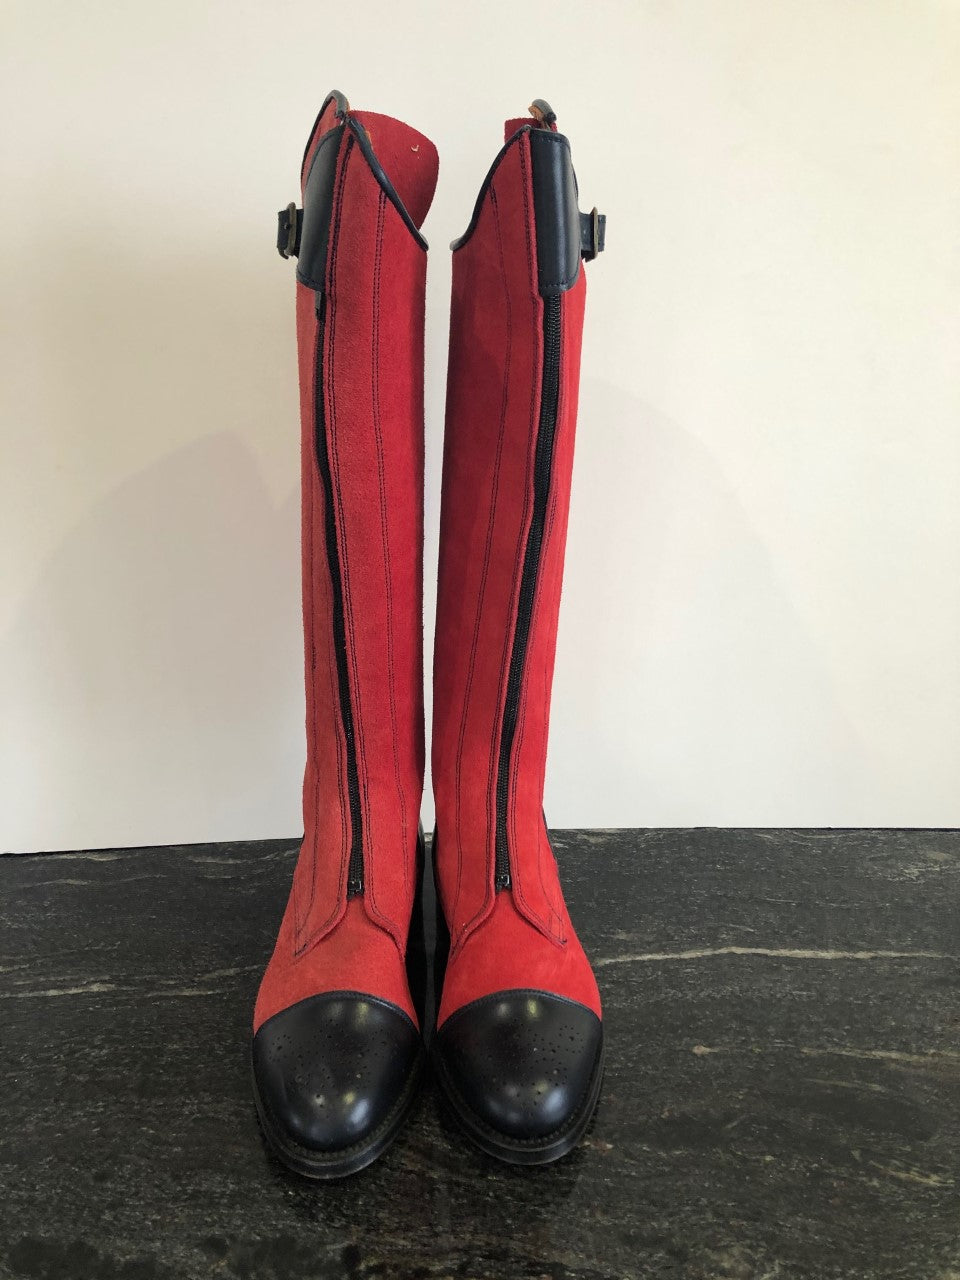 Sun damaged Red and Navy polo boot in size 3/36.